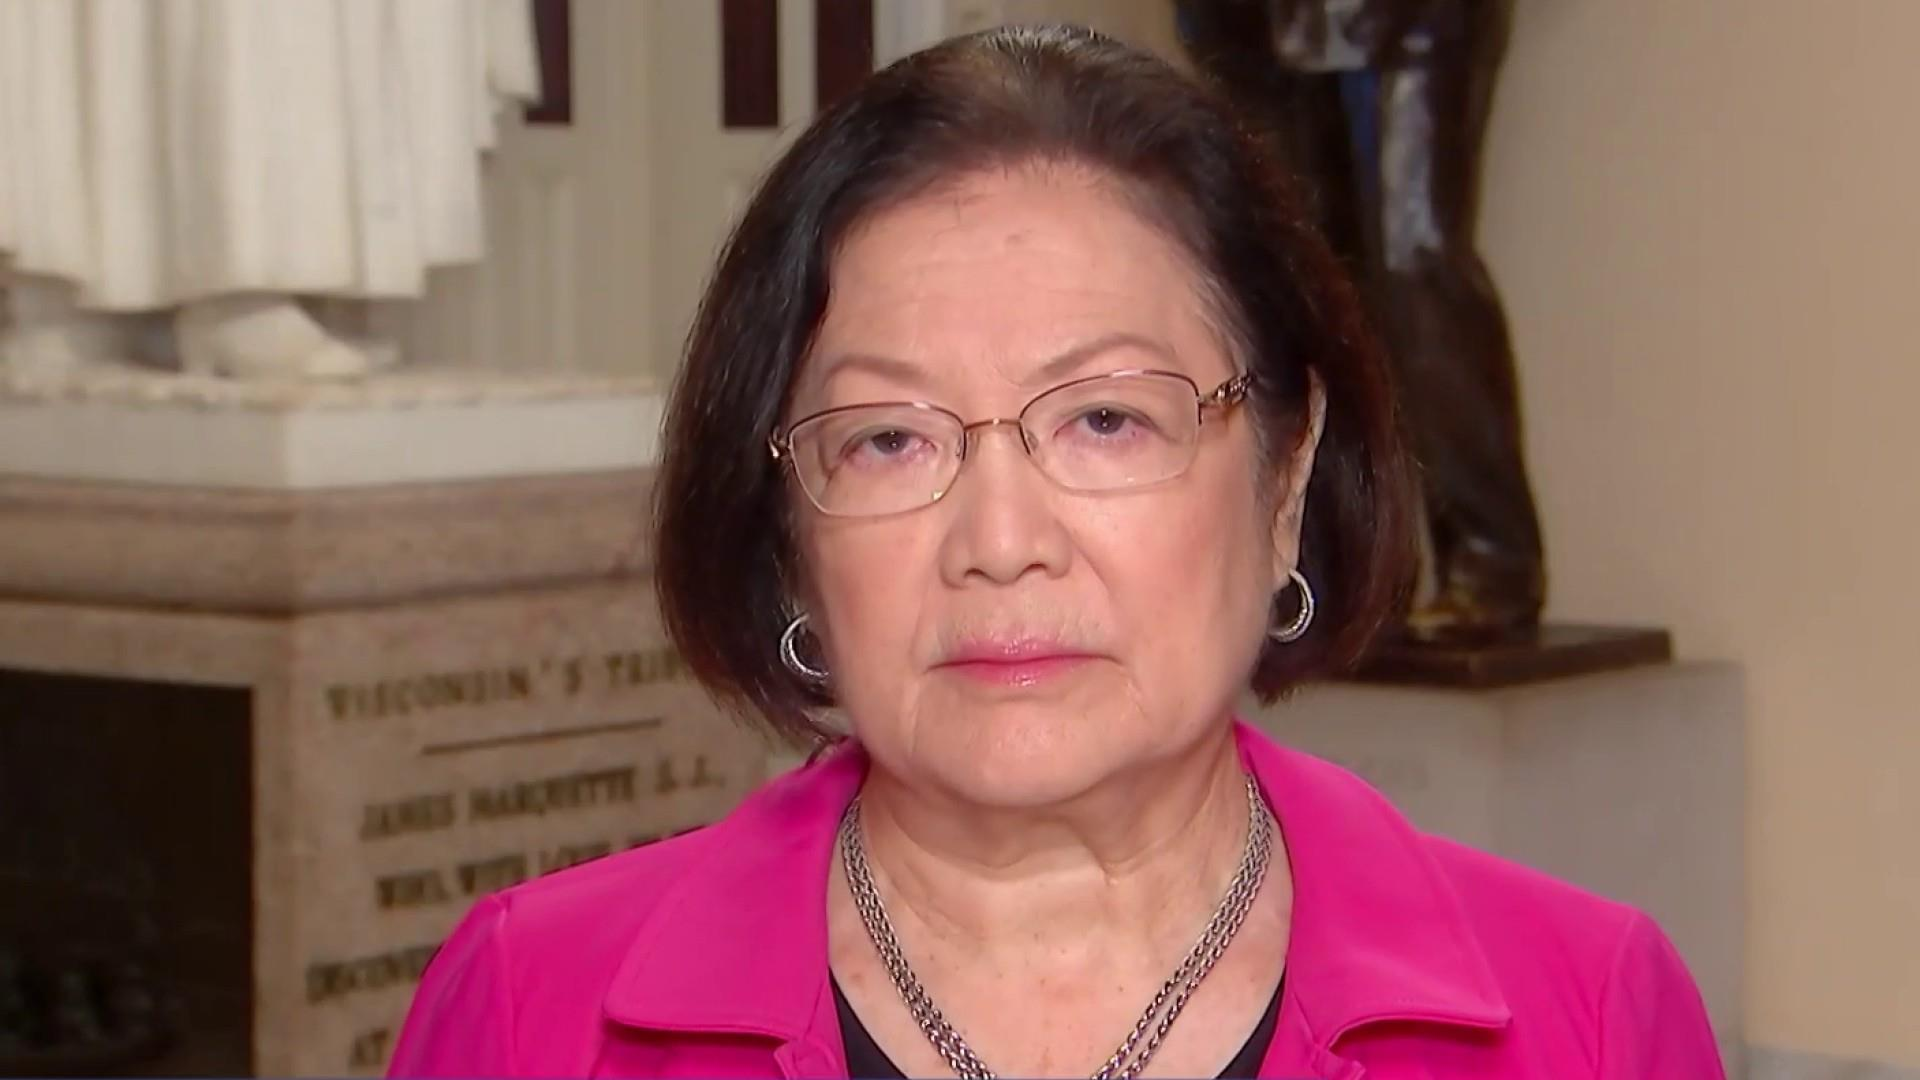 Sen. Hirono: I have concerns about General Hyten's judgment